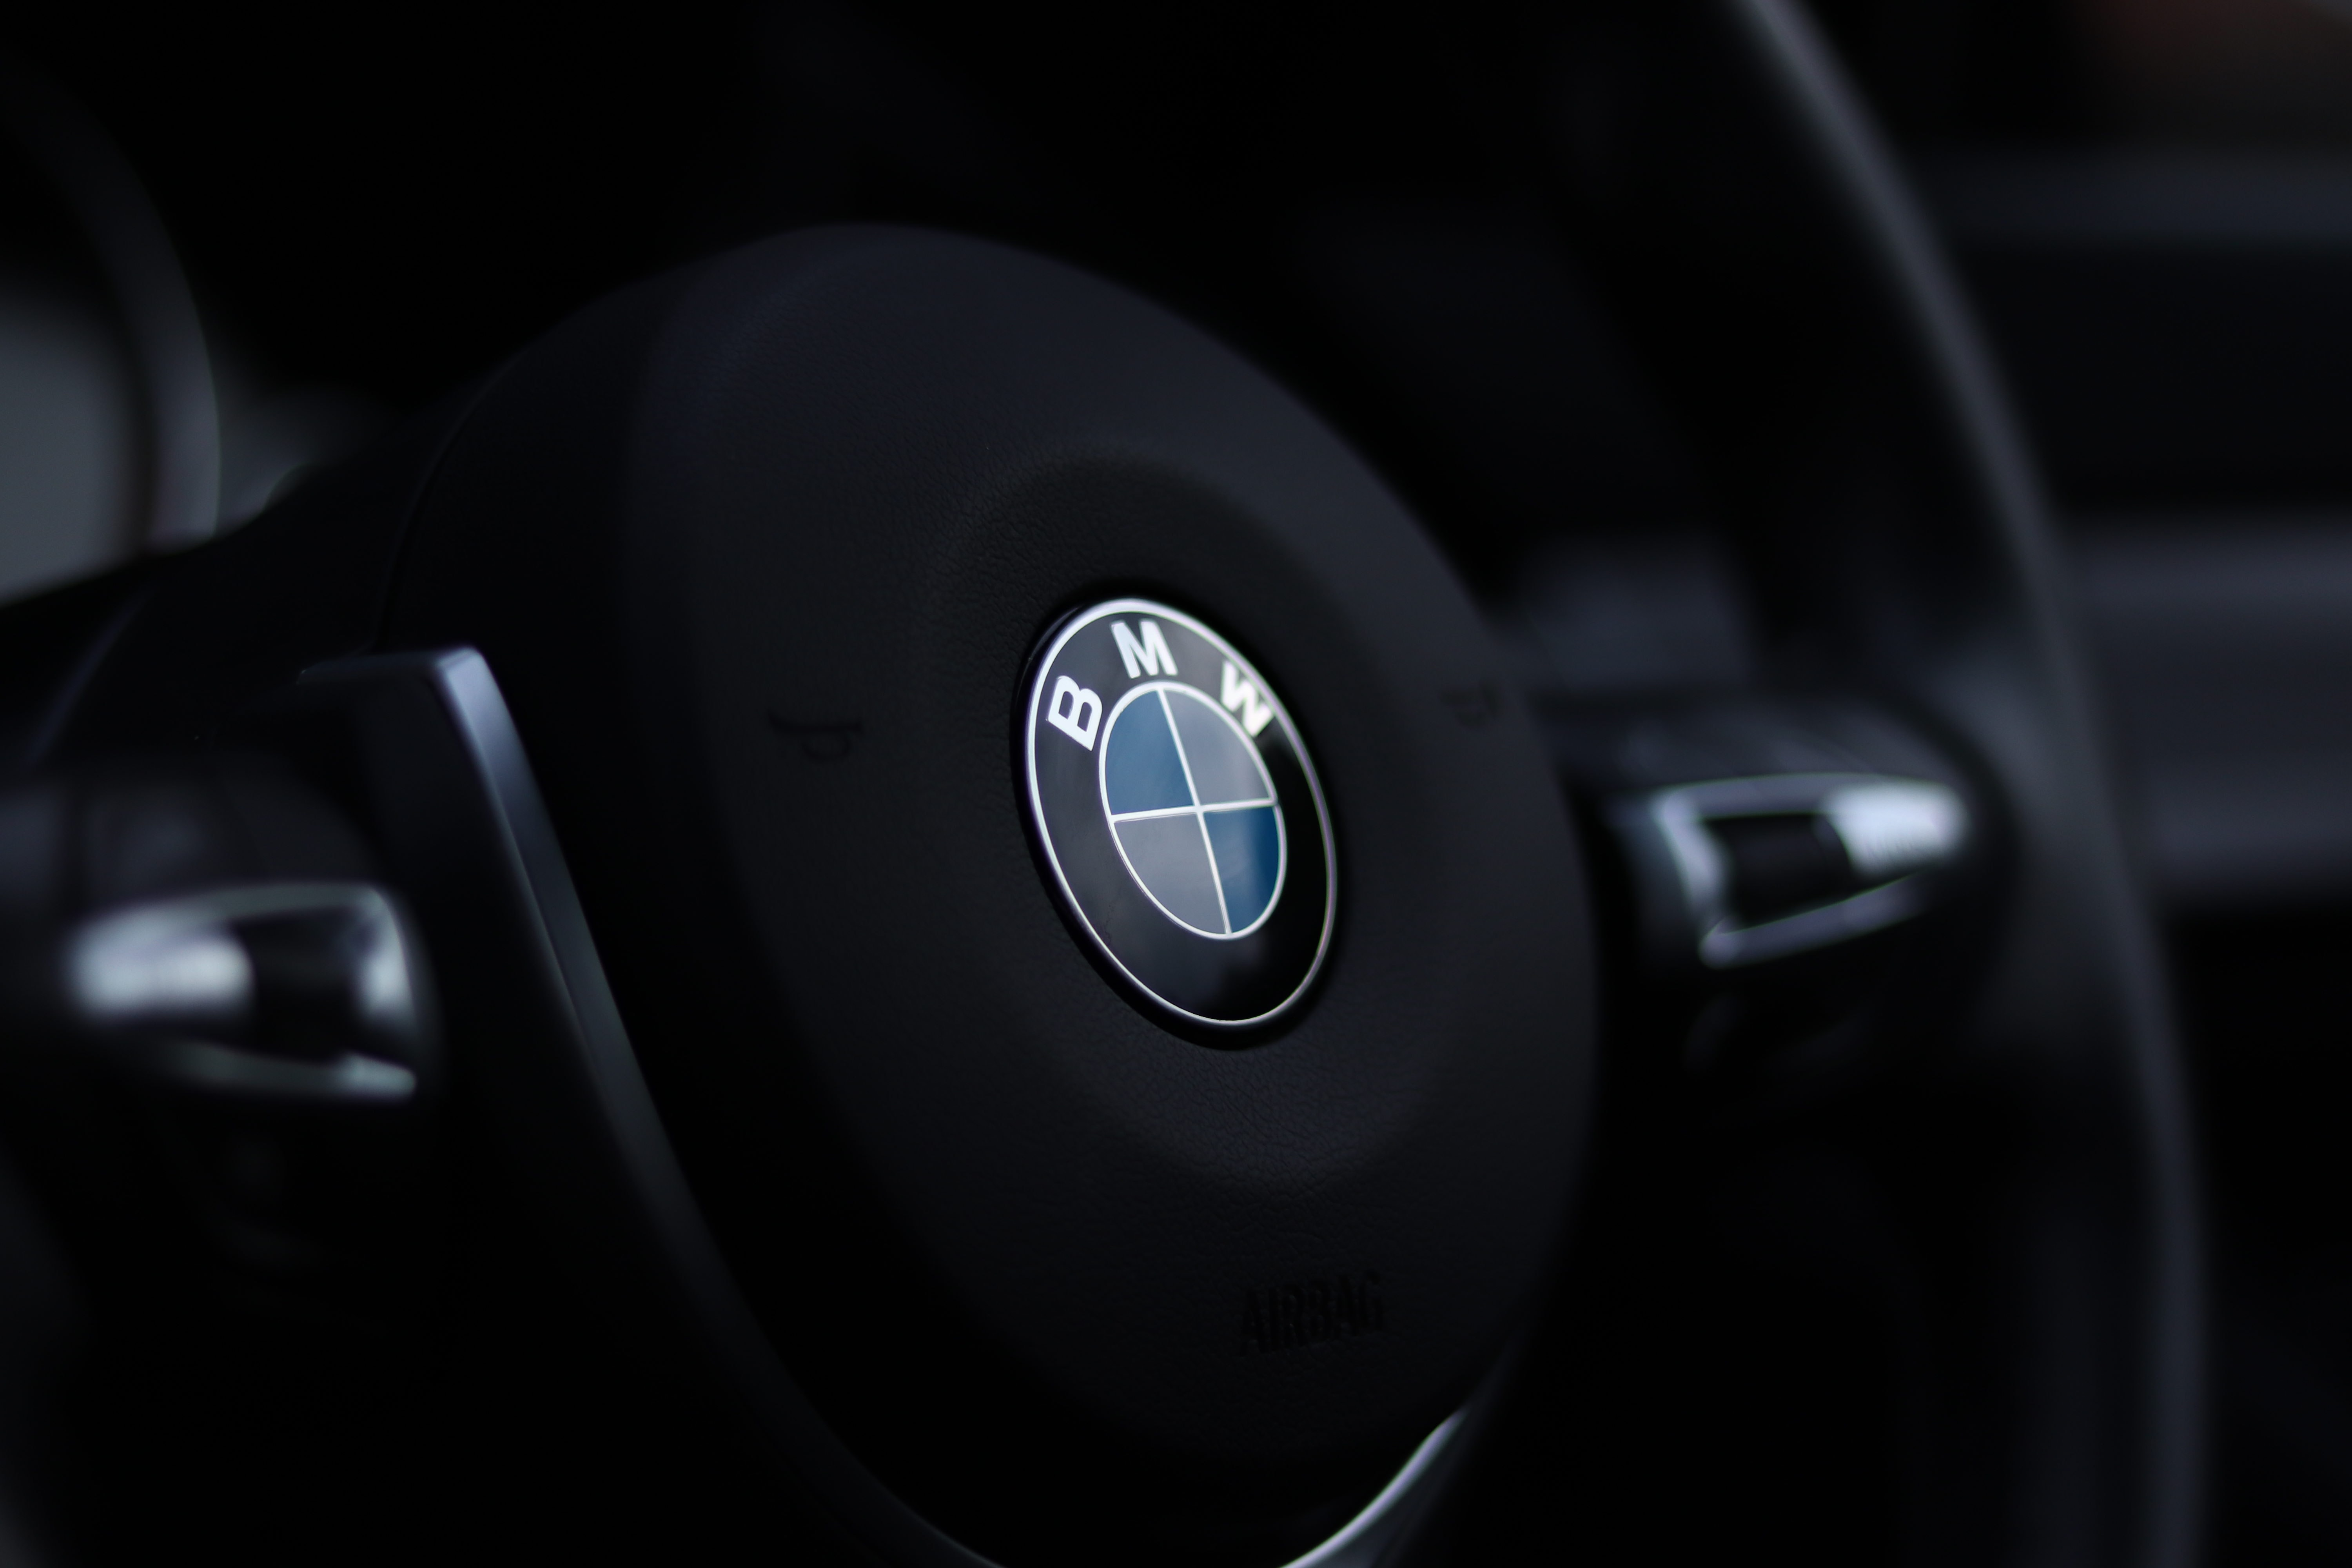 Bmw Logo Steering Wheel European And German Cars Service Specialists